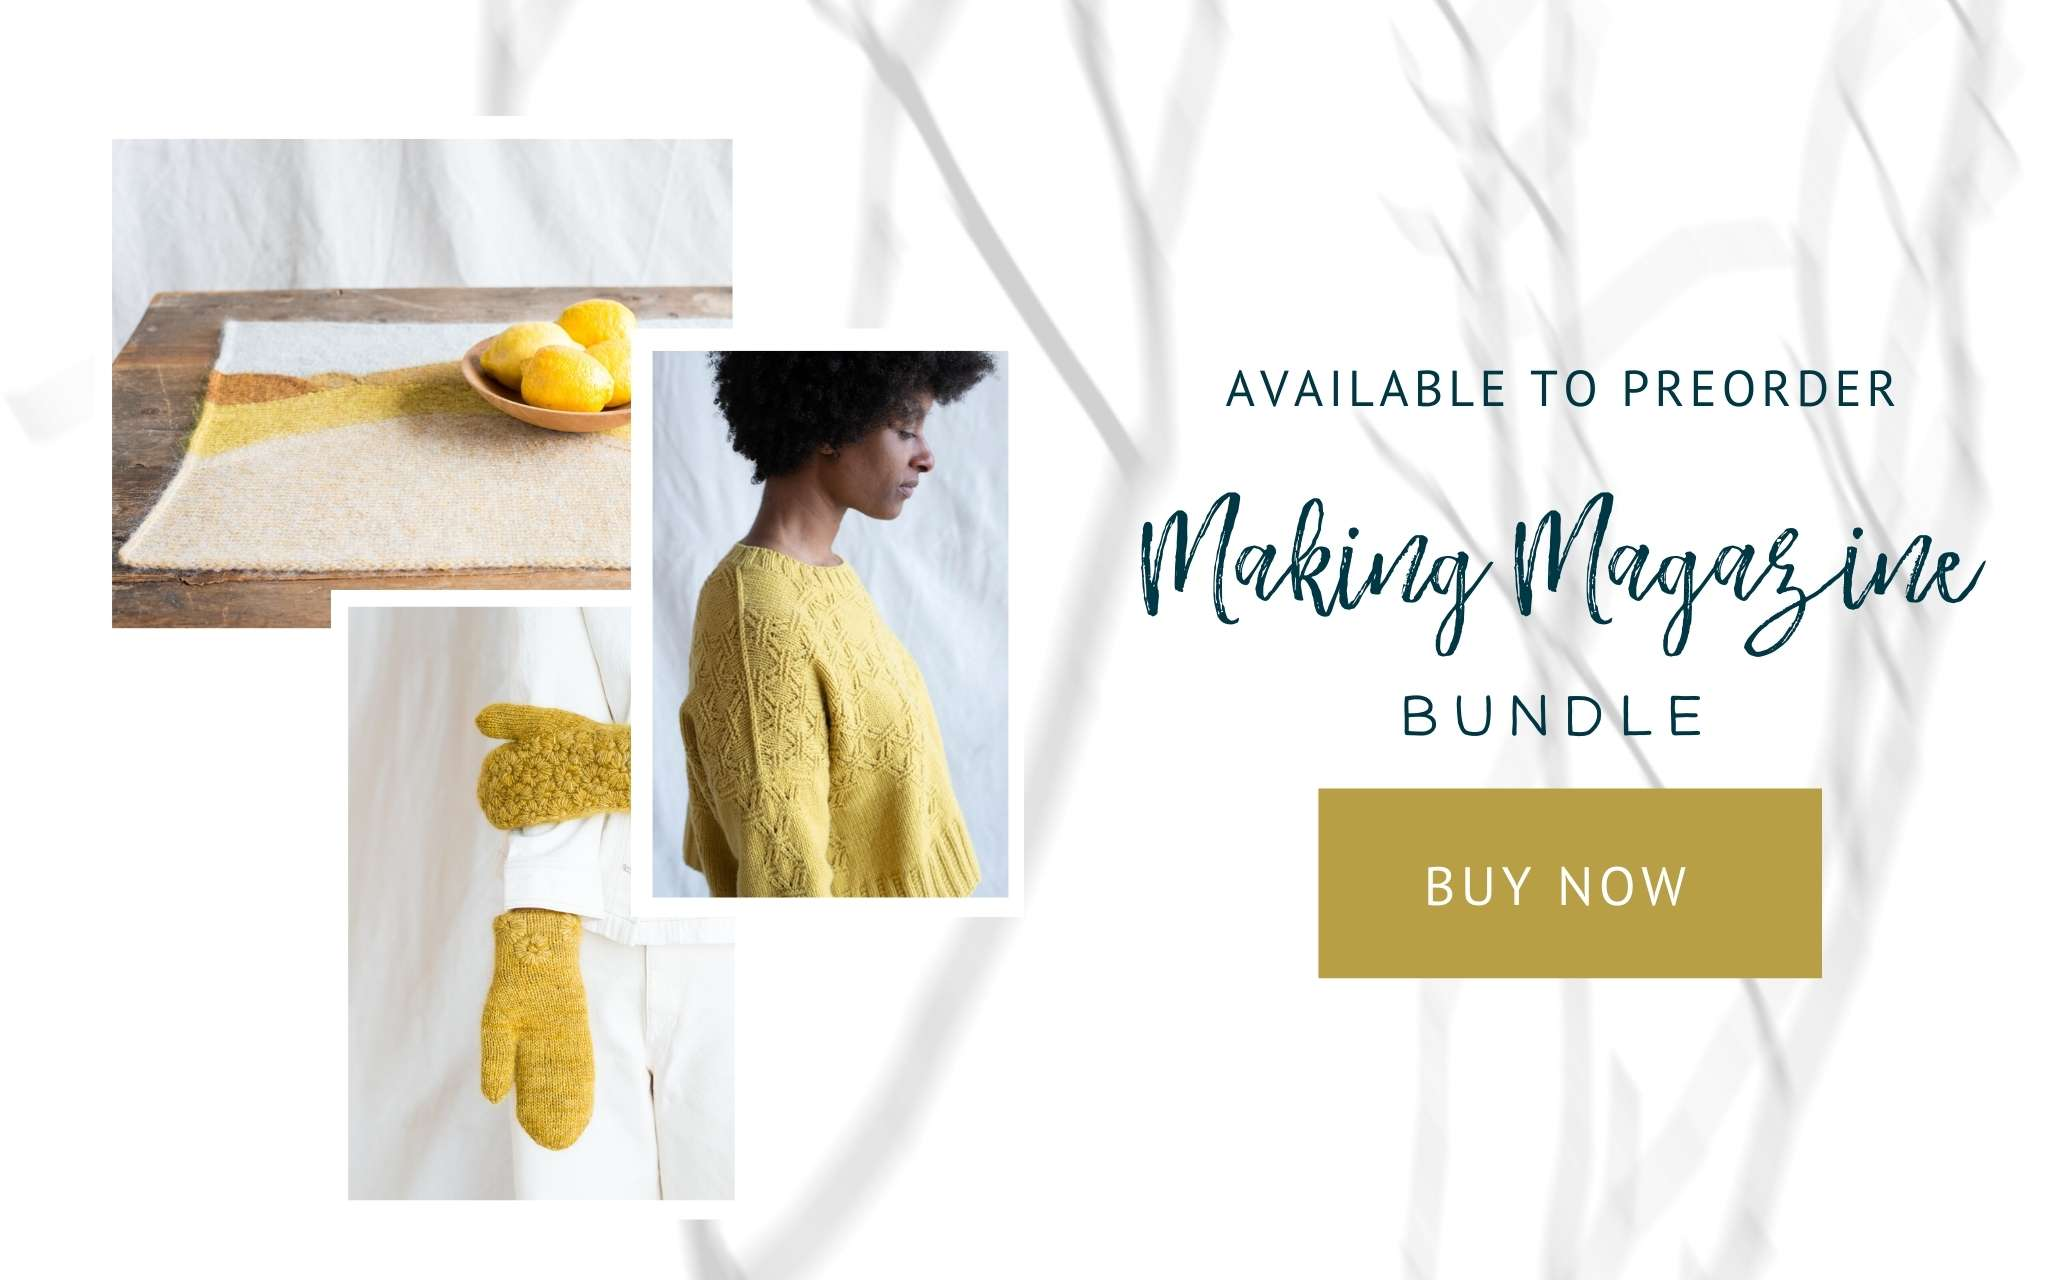 image of a detailed yellow sweater, a table mat and a pair of yellow mittens with the text 'Preorder available: Making Magazine bundle'